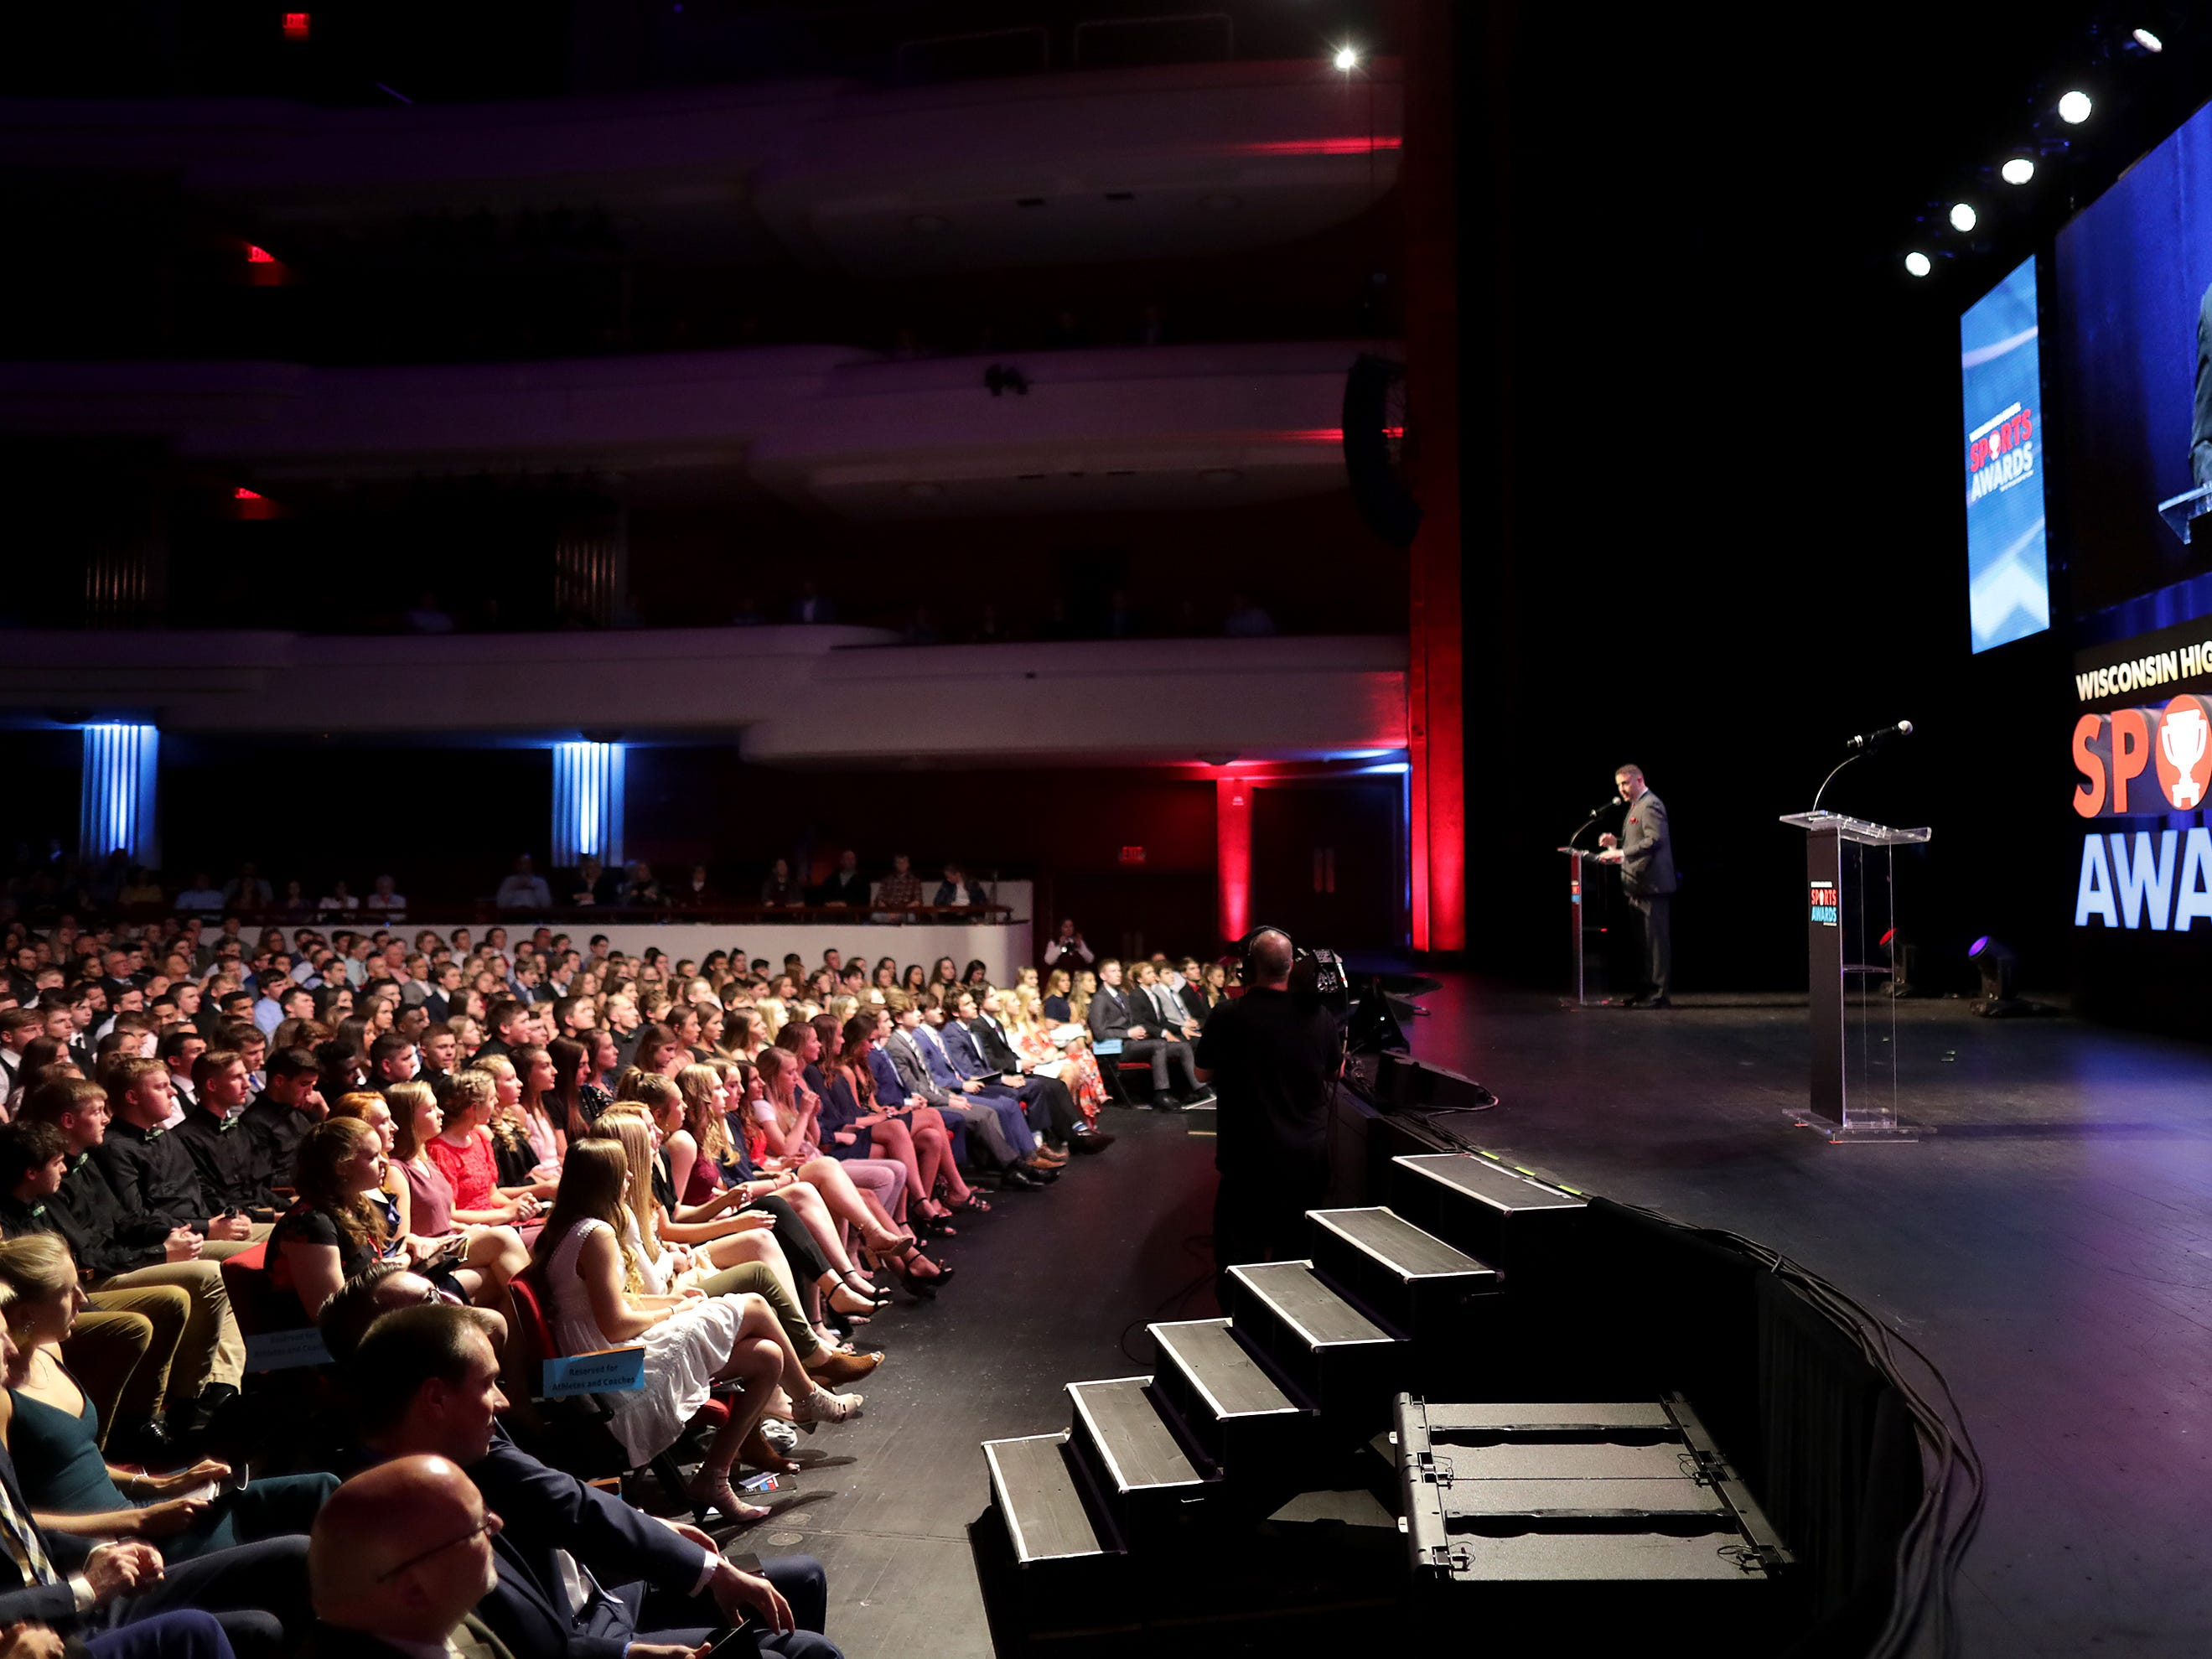 Wisconsin High School Sports Awards show at the Fox Cities Performing Arts Center on Wednesday, May 8, 2019, in Appleton, Wis. Olympic champion Michael Phelps was the guest speaker. The annaul event was presented by USA TODAY NETWORK-Wisconsin. 